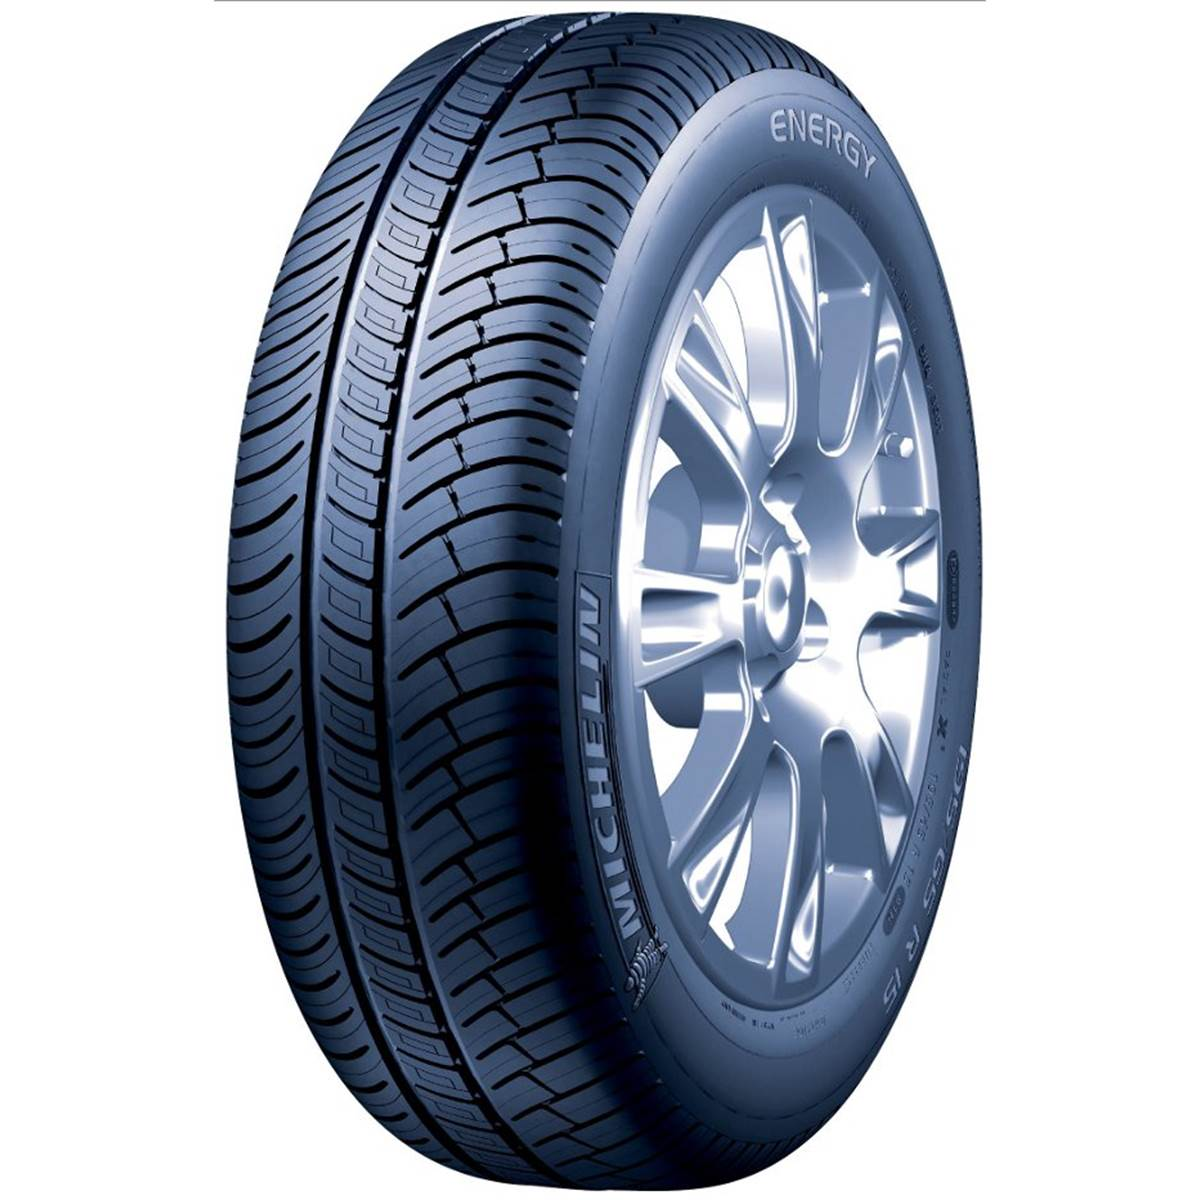 Pneu Michelin 175/65R13 80T Energy E3B